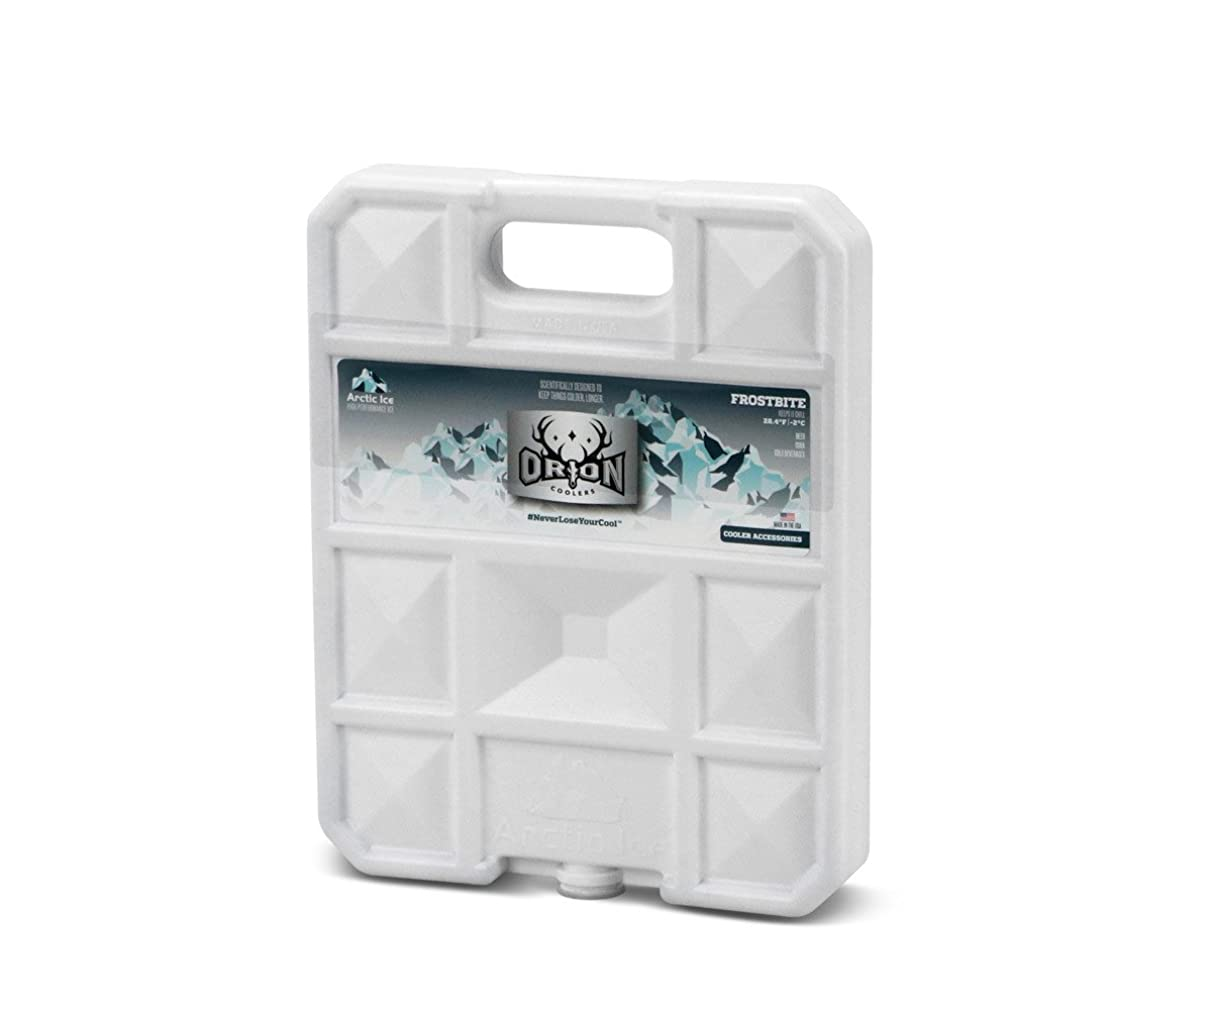 ORION Black Ice/Frostbite Arctic Ice – Extra Large Long Lasting Freezer Ice Pack – Hard Shell Dry Ice Alternative Cooler Accessory